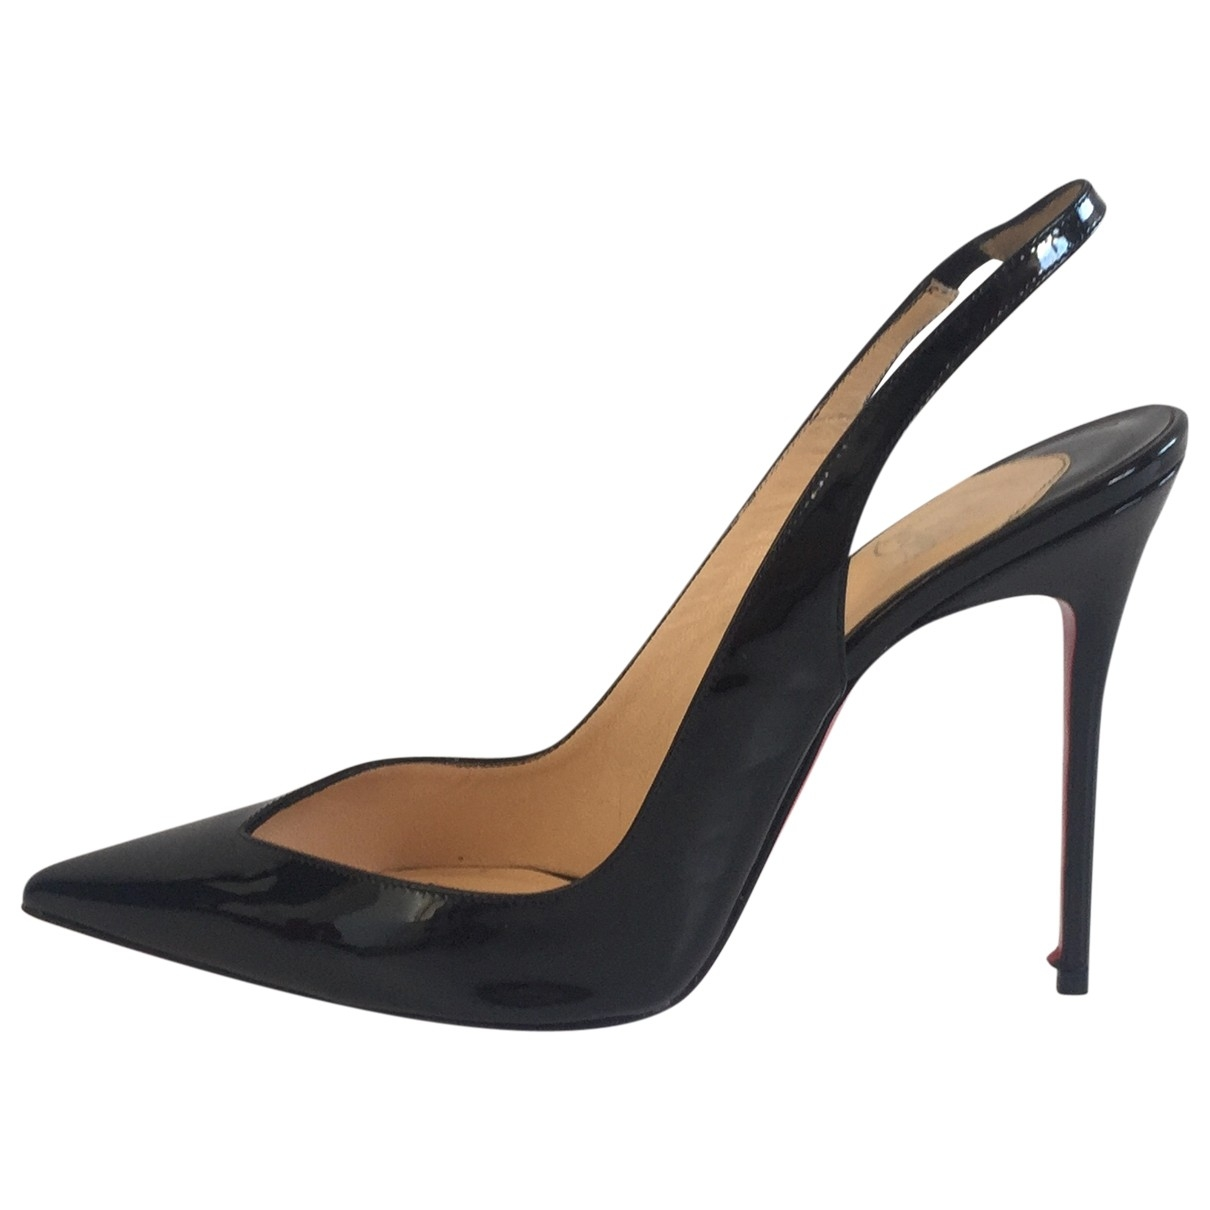 Christian Louboutin \N Black Patent leather Heels for Women 40 EU